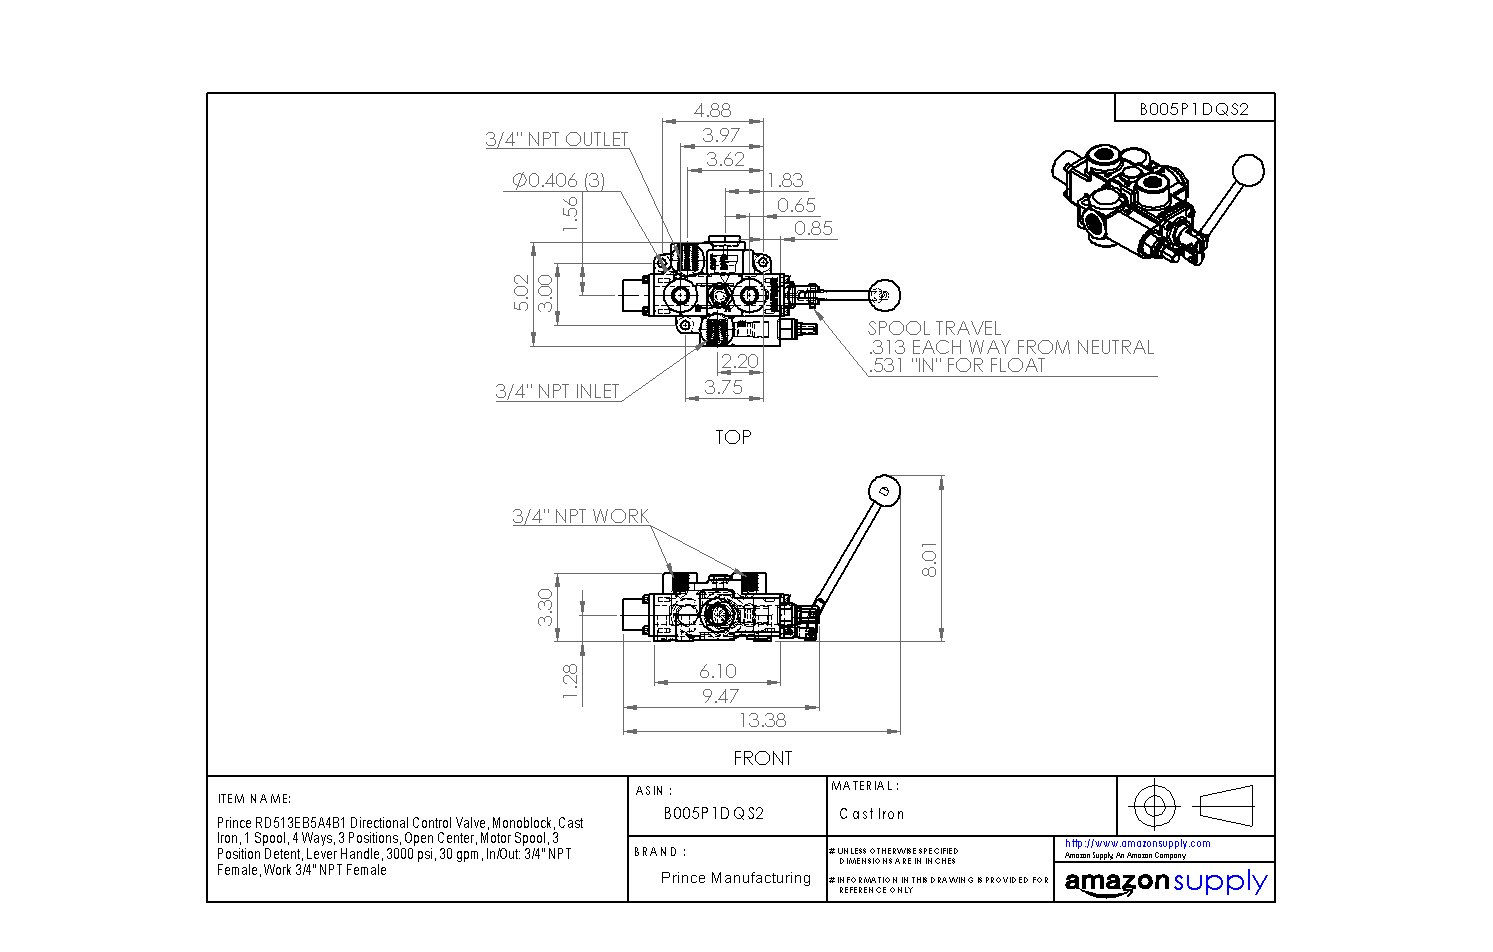 Open Center 30 gpm 3 Position Detent Work 3//4 NPT Female 1 Spool 3000 psi Motor Spool Monoblock Lever Handle Cast Iron 3 Positions In//Out: 3//4 NPT Female 4 Ways Prince RD513EB5A4B1 Directional Control Valve